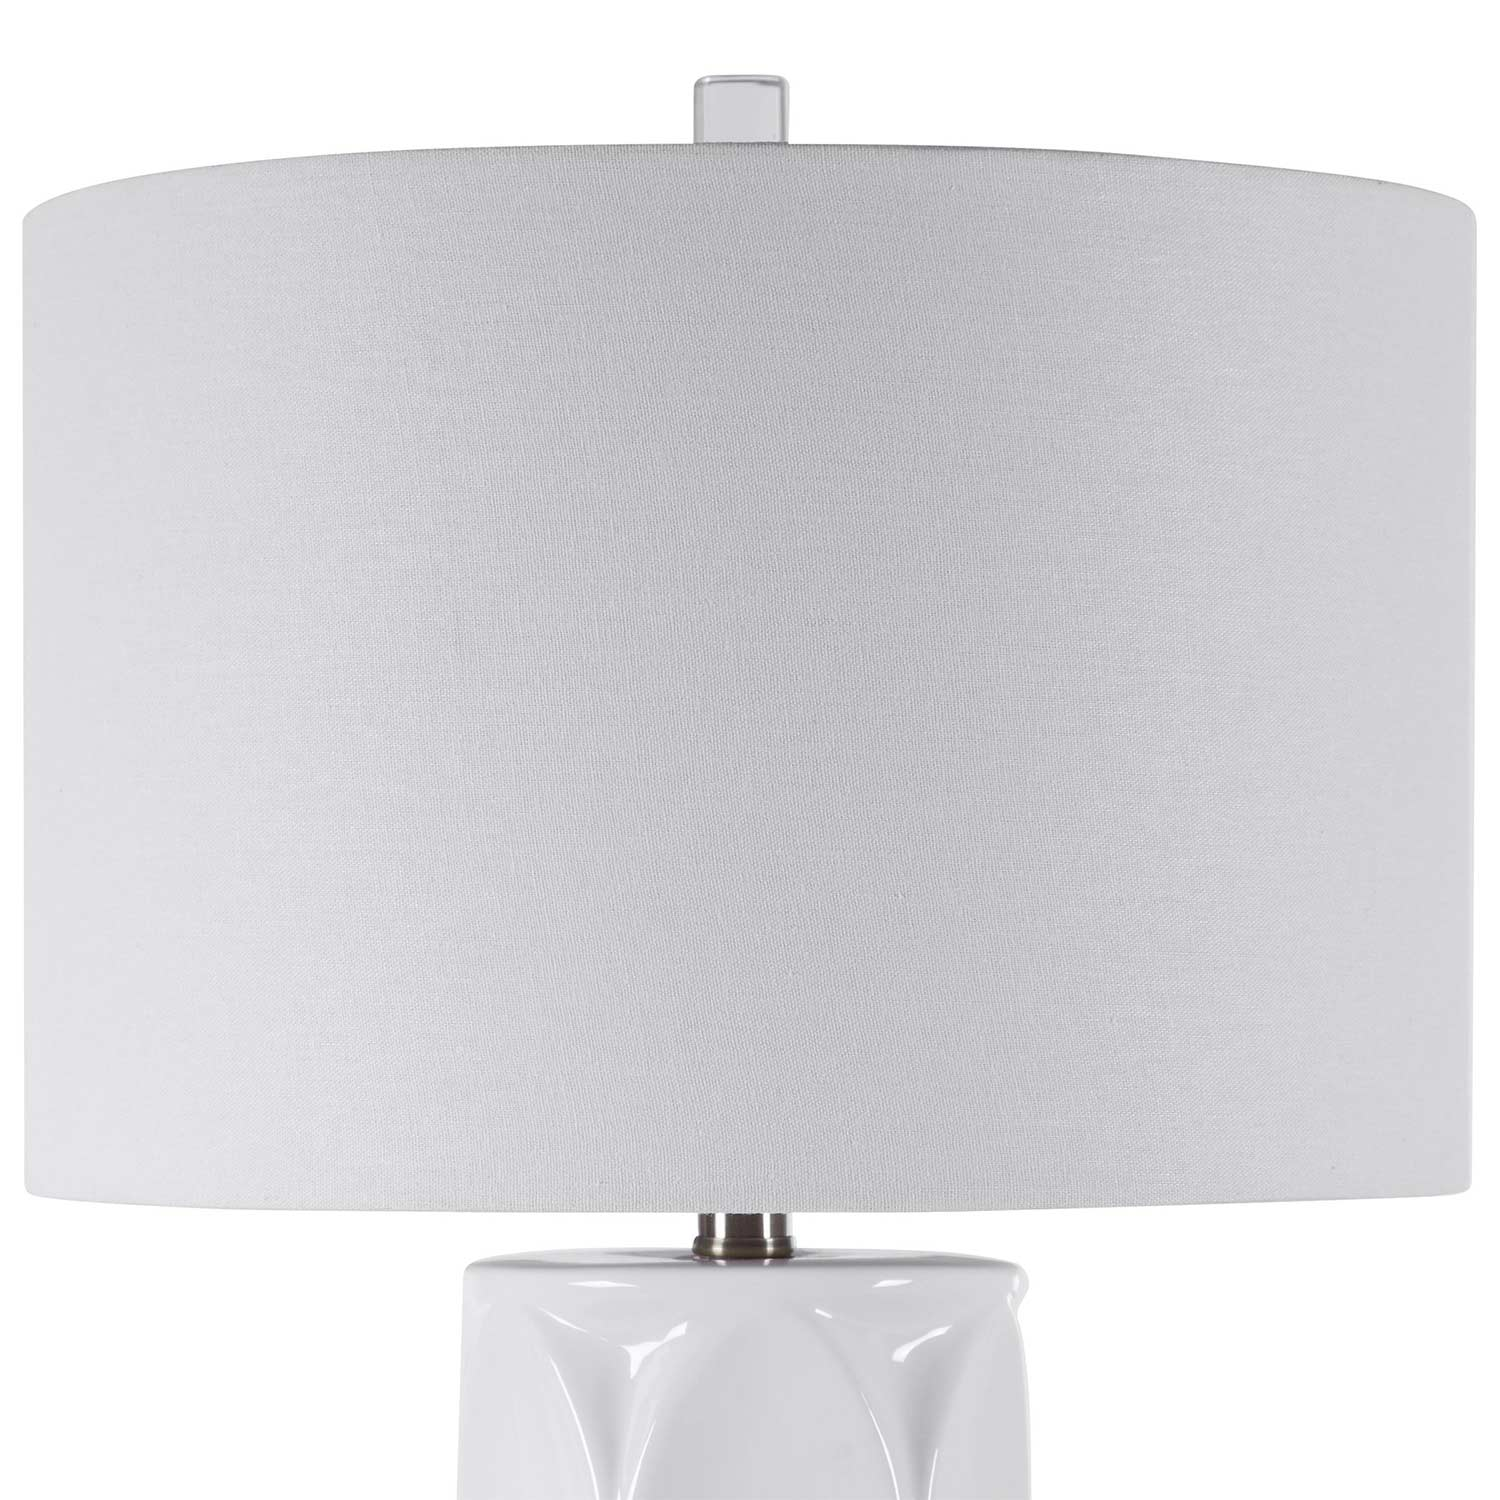 Uttermost Sinclair Table Lamp - White